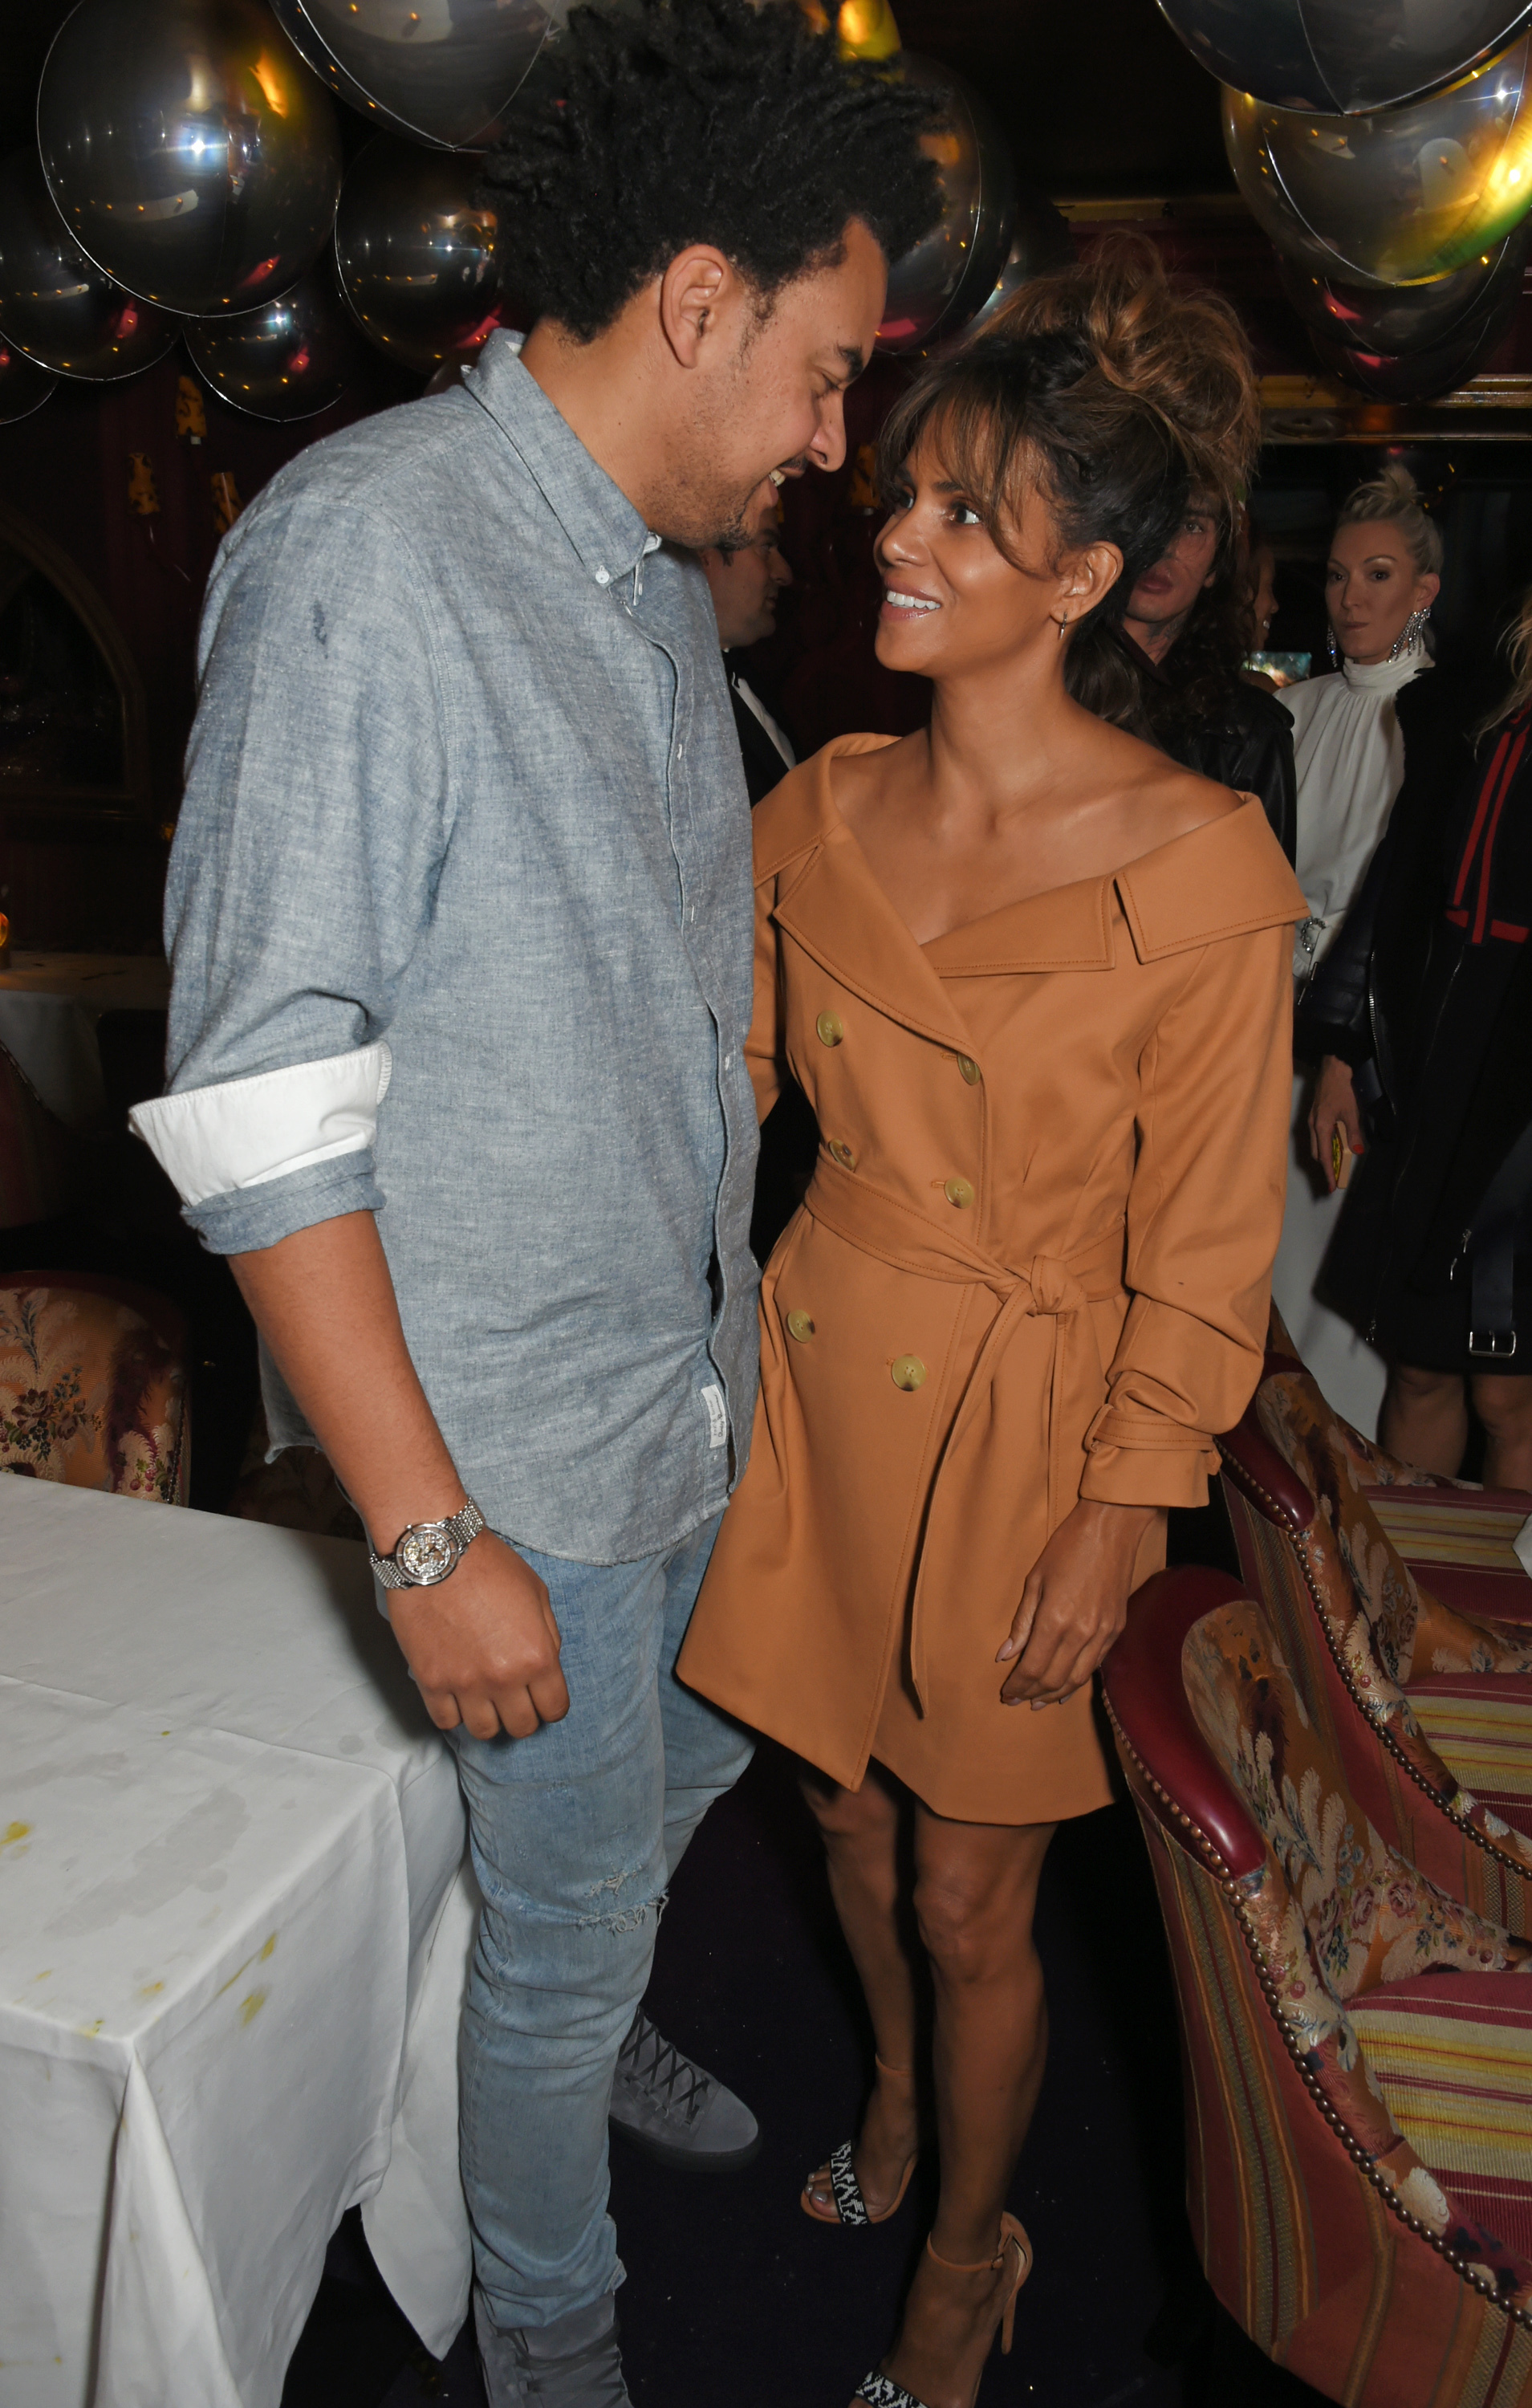 """It's Insta official! Halle Berry (51) and British music producer, Alex Da Kid (35) made their relationship public on Tuesday September 19th with an adorable black and white photo of the pair. """"My balance,"""" Berry captioned the photo. The same day, People Magazine reported seeing the two hand in hand in London entering a restaurant for a romantic date night."""